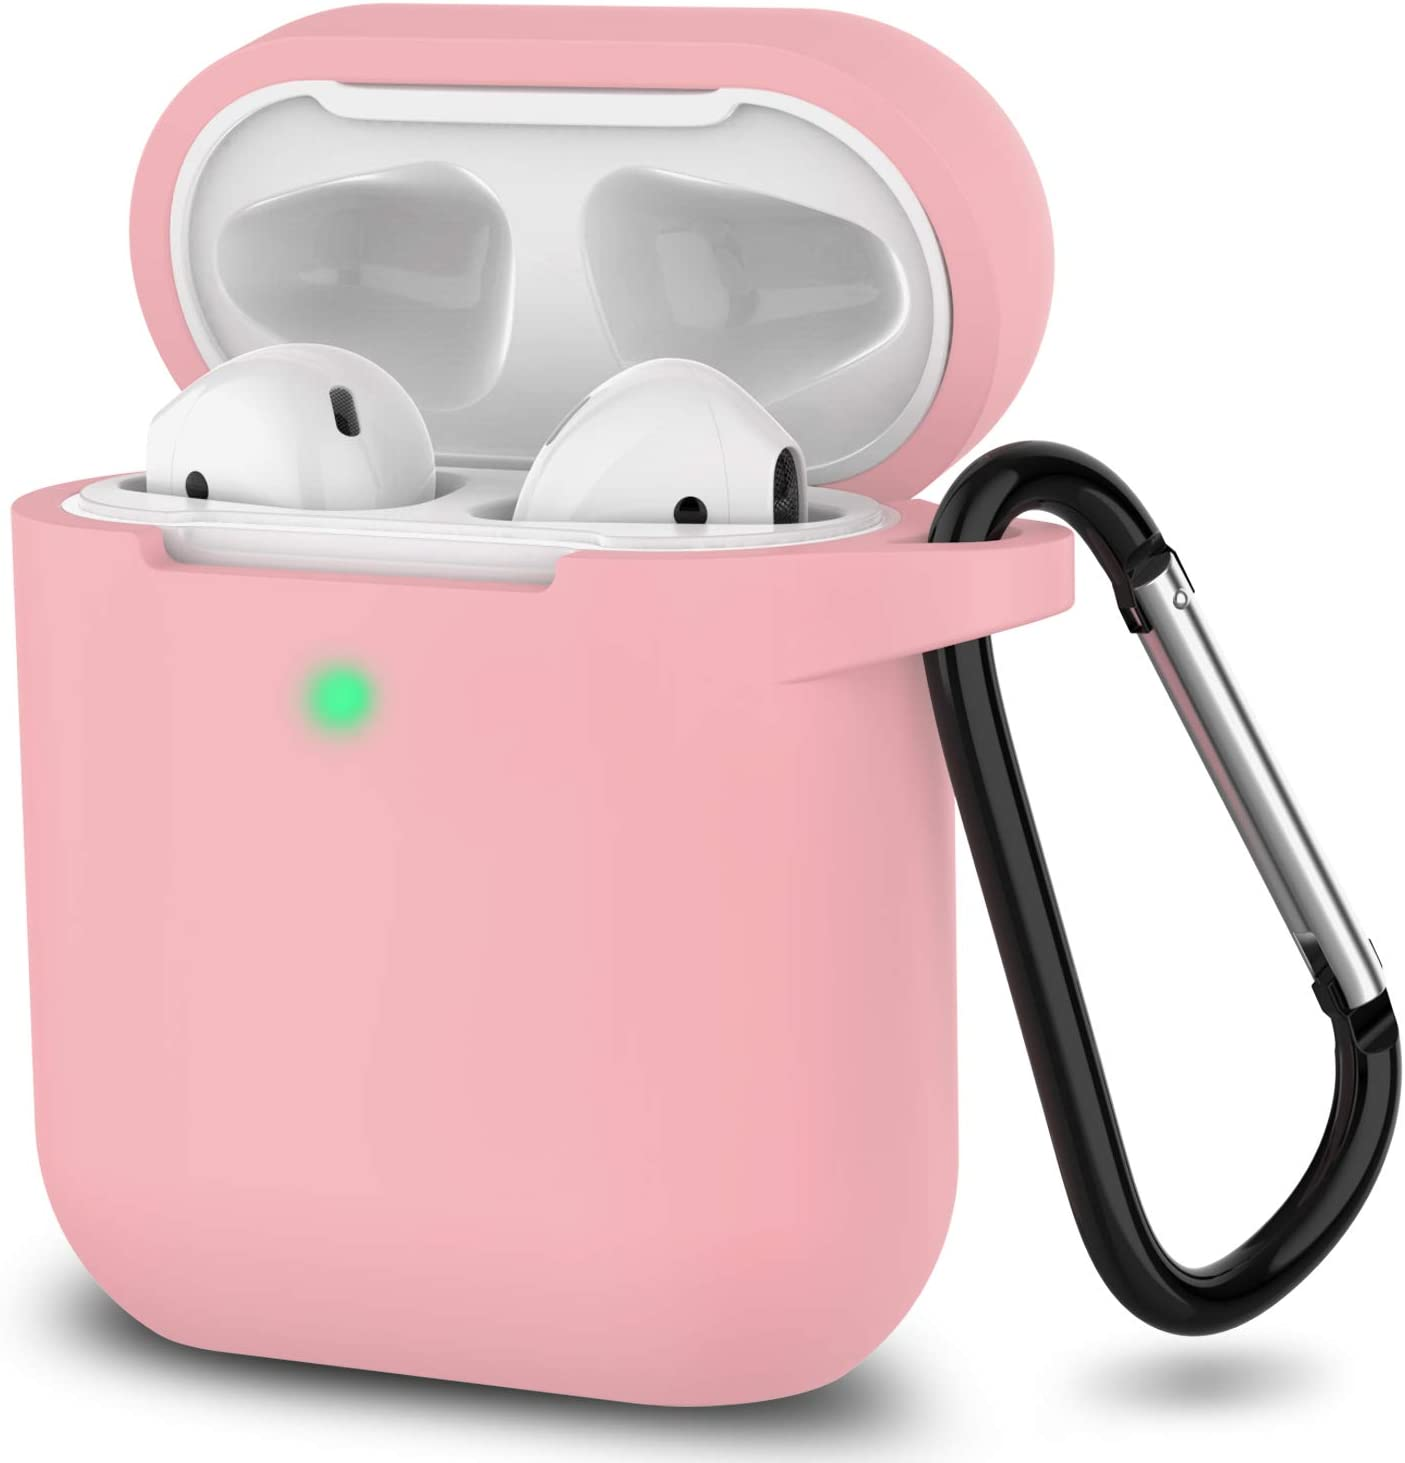 AirPods Case, Full Protective Silicone AirPods Accessories Cover Compatible with Apple AirPods 1&2 Wireless and Wired Charging Case(Front LED Visible),Pink